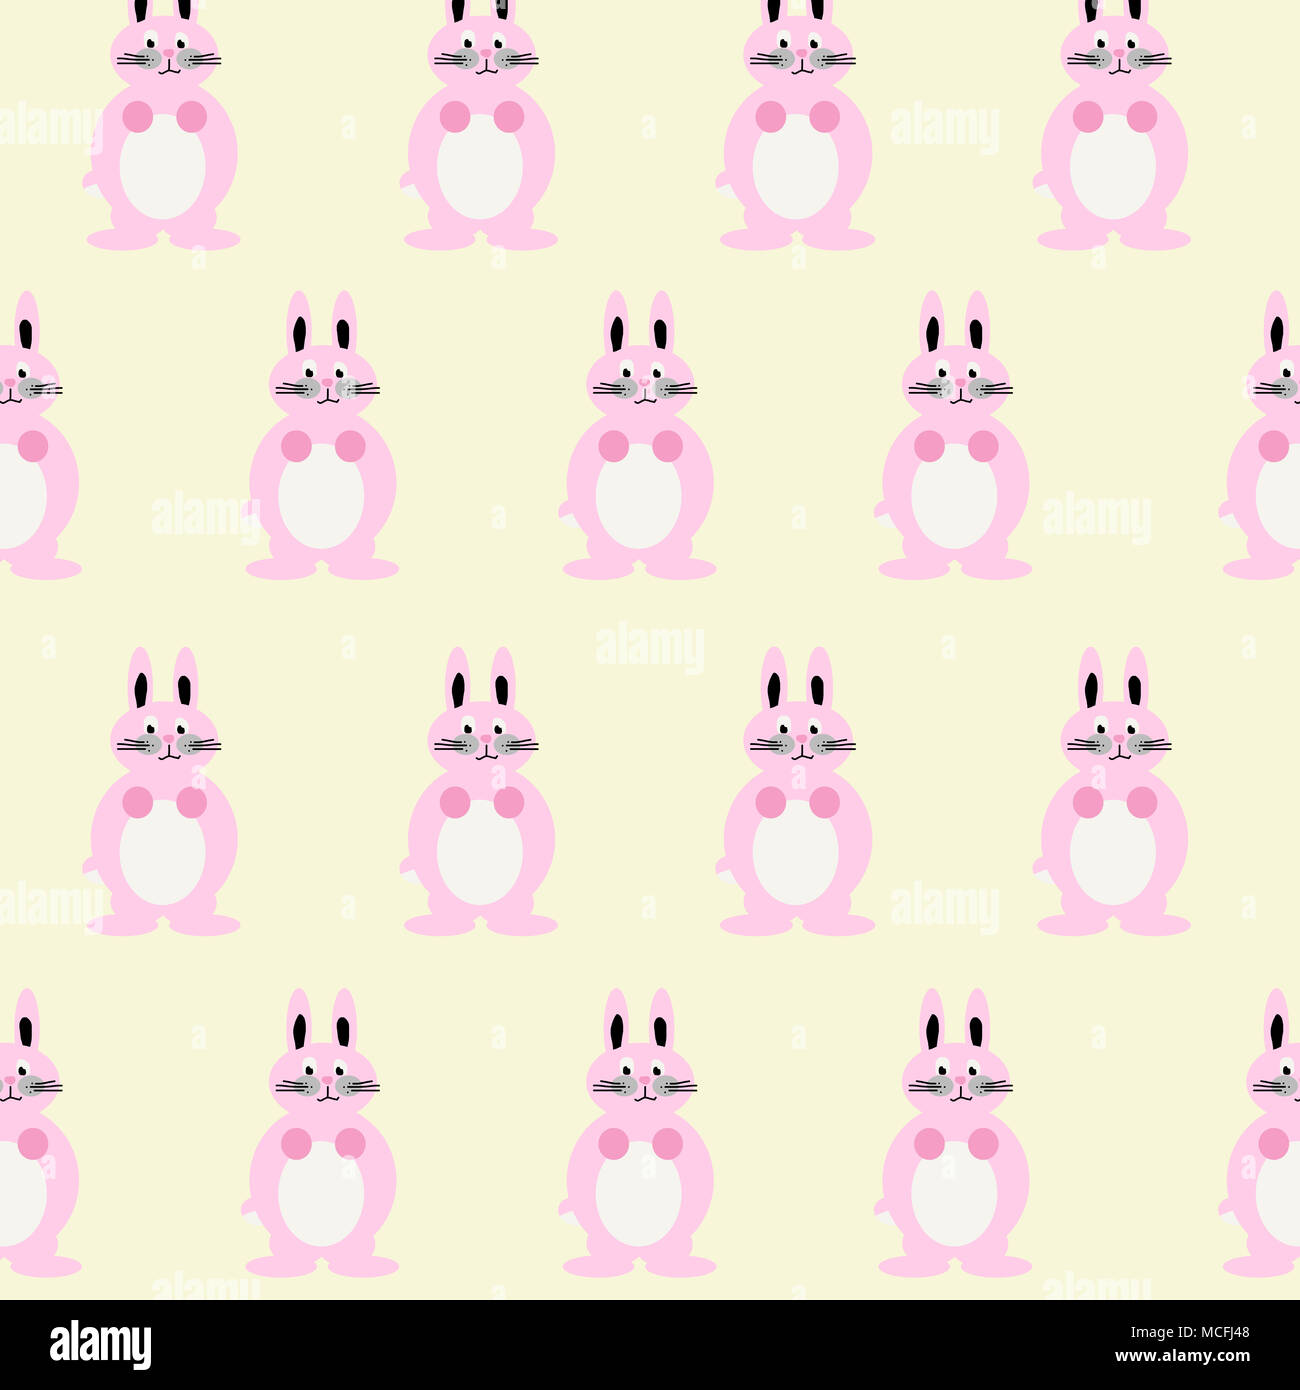 Cute and colorful bunny illustration including multiple baby pink rabbits. Lovely childlike drawing! - Stock Image